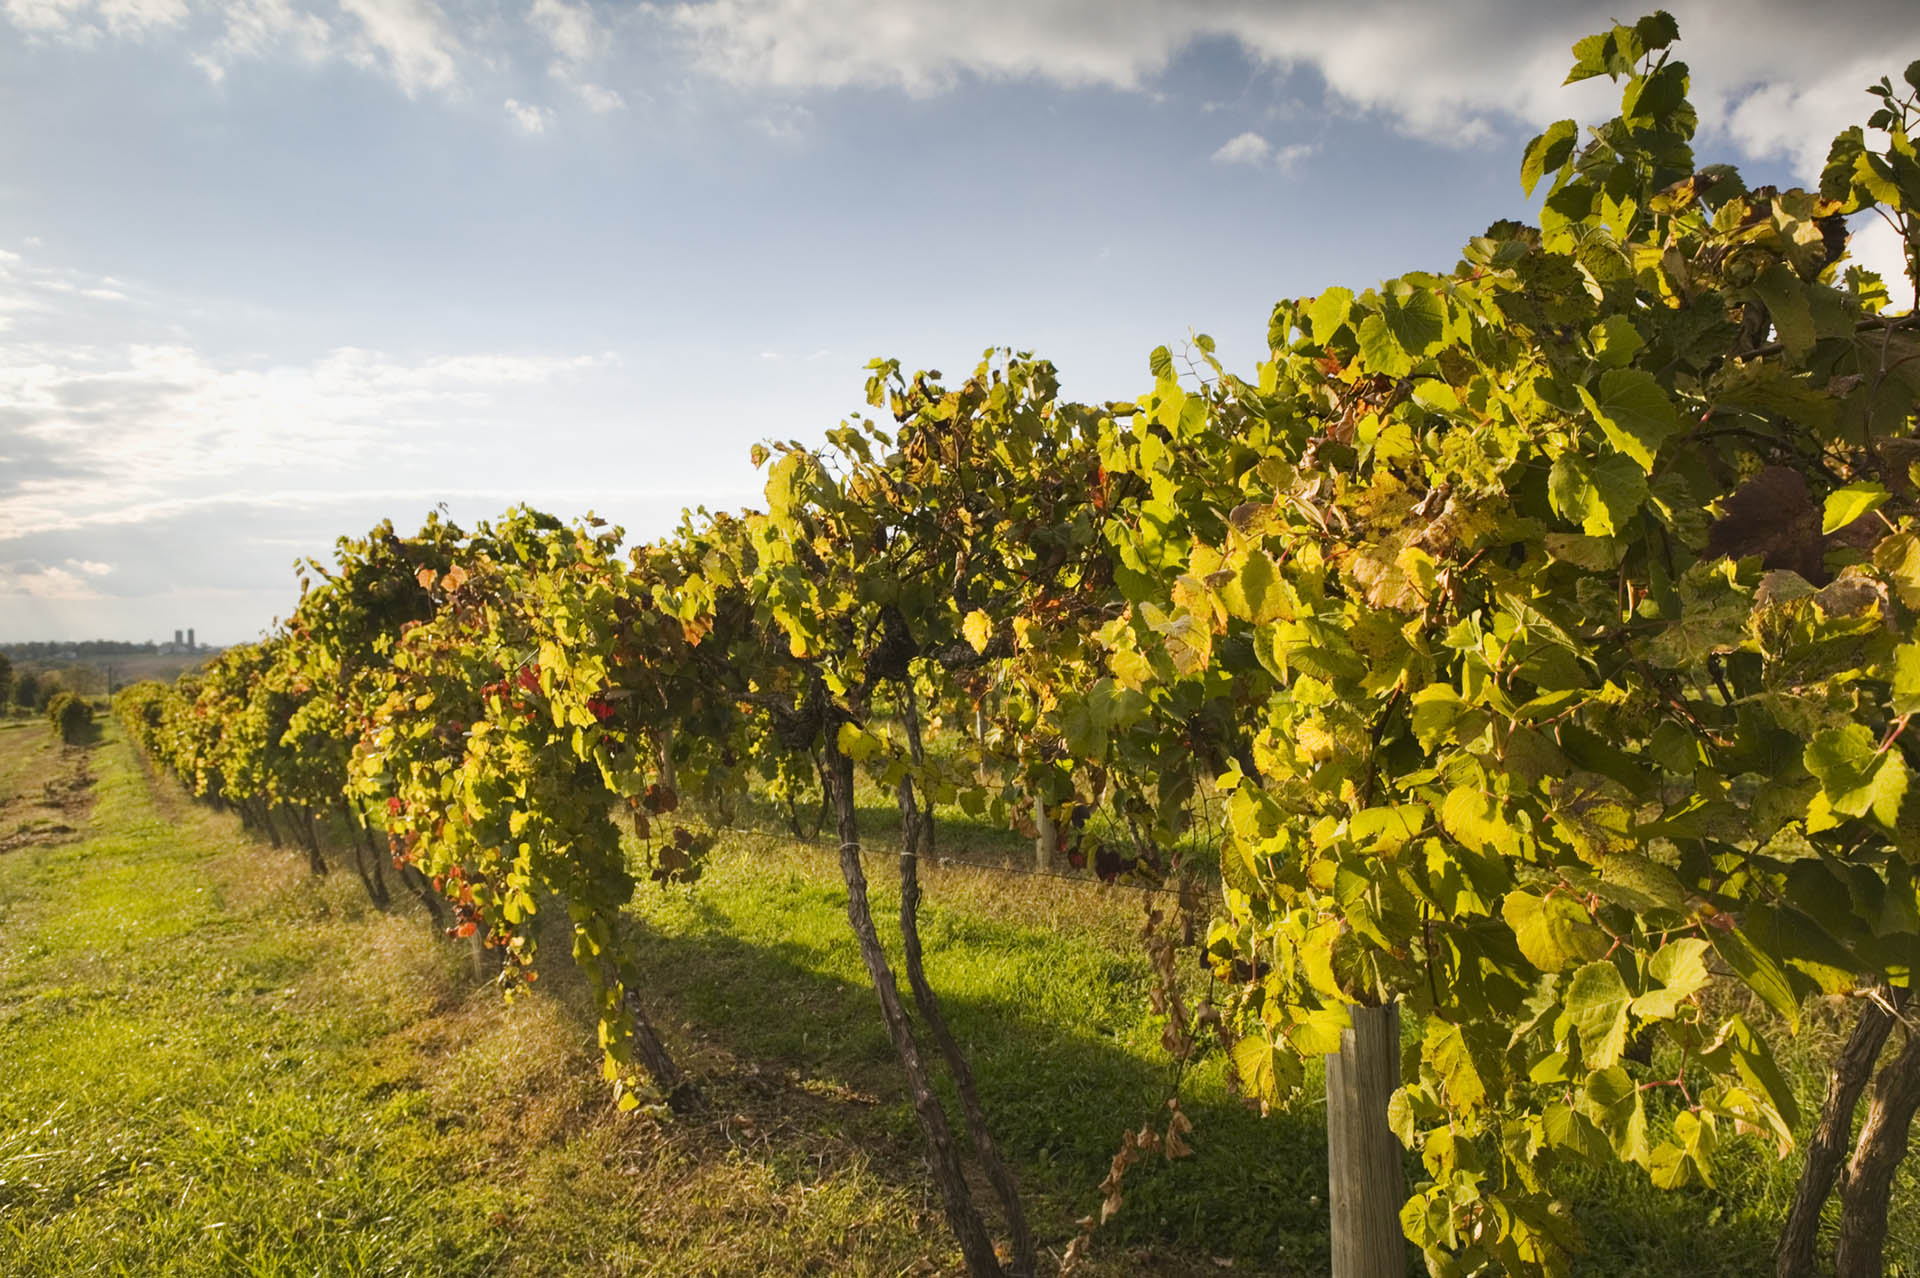 Vineyard in Missouri's Augusta AVA, the country's first-ever established American Viticultural Area / Getty